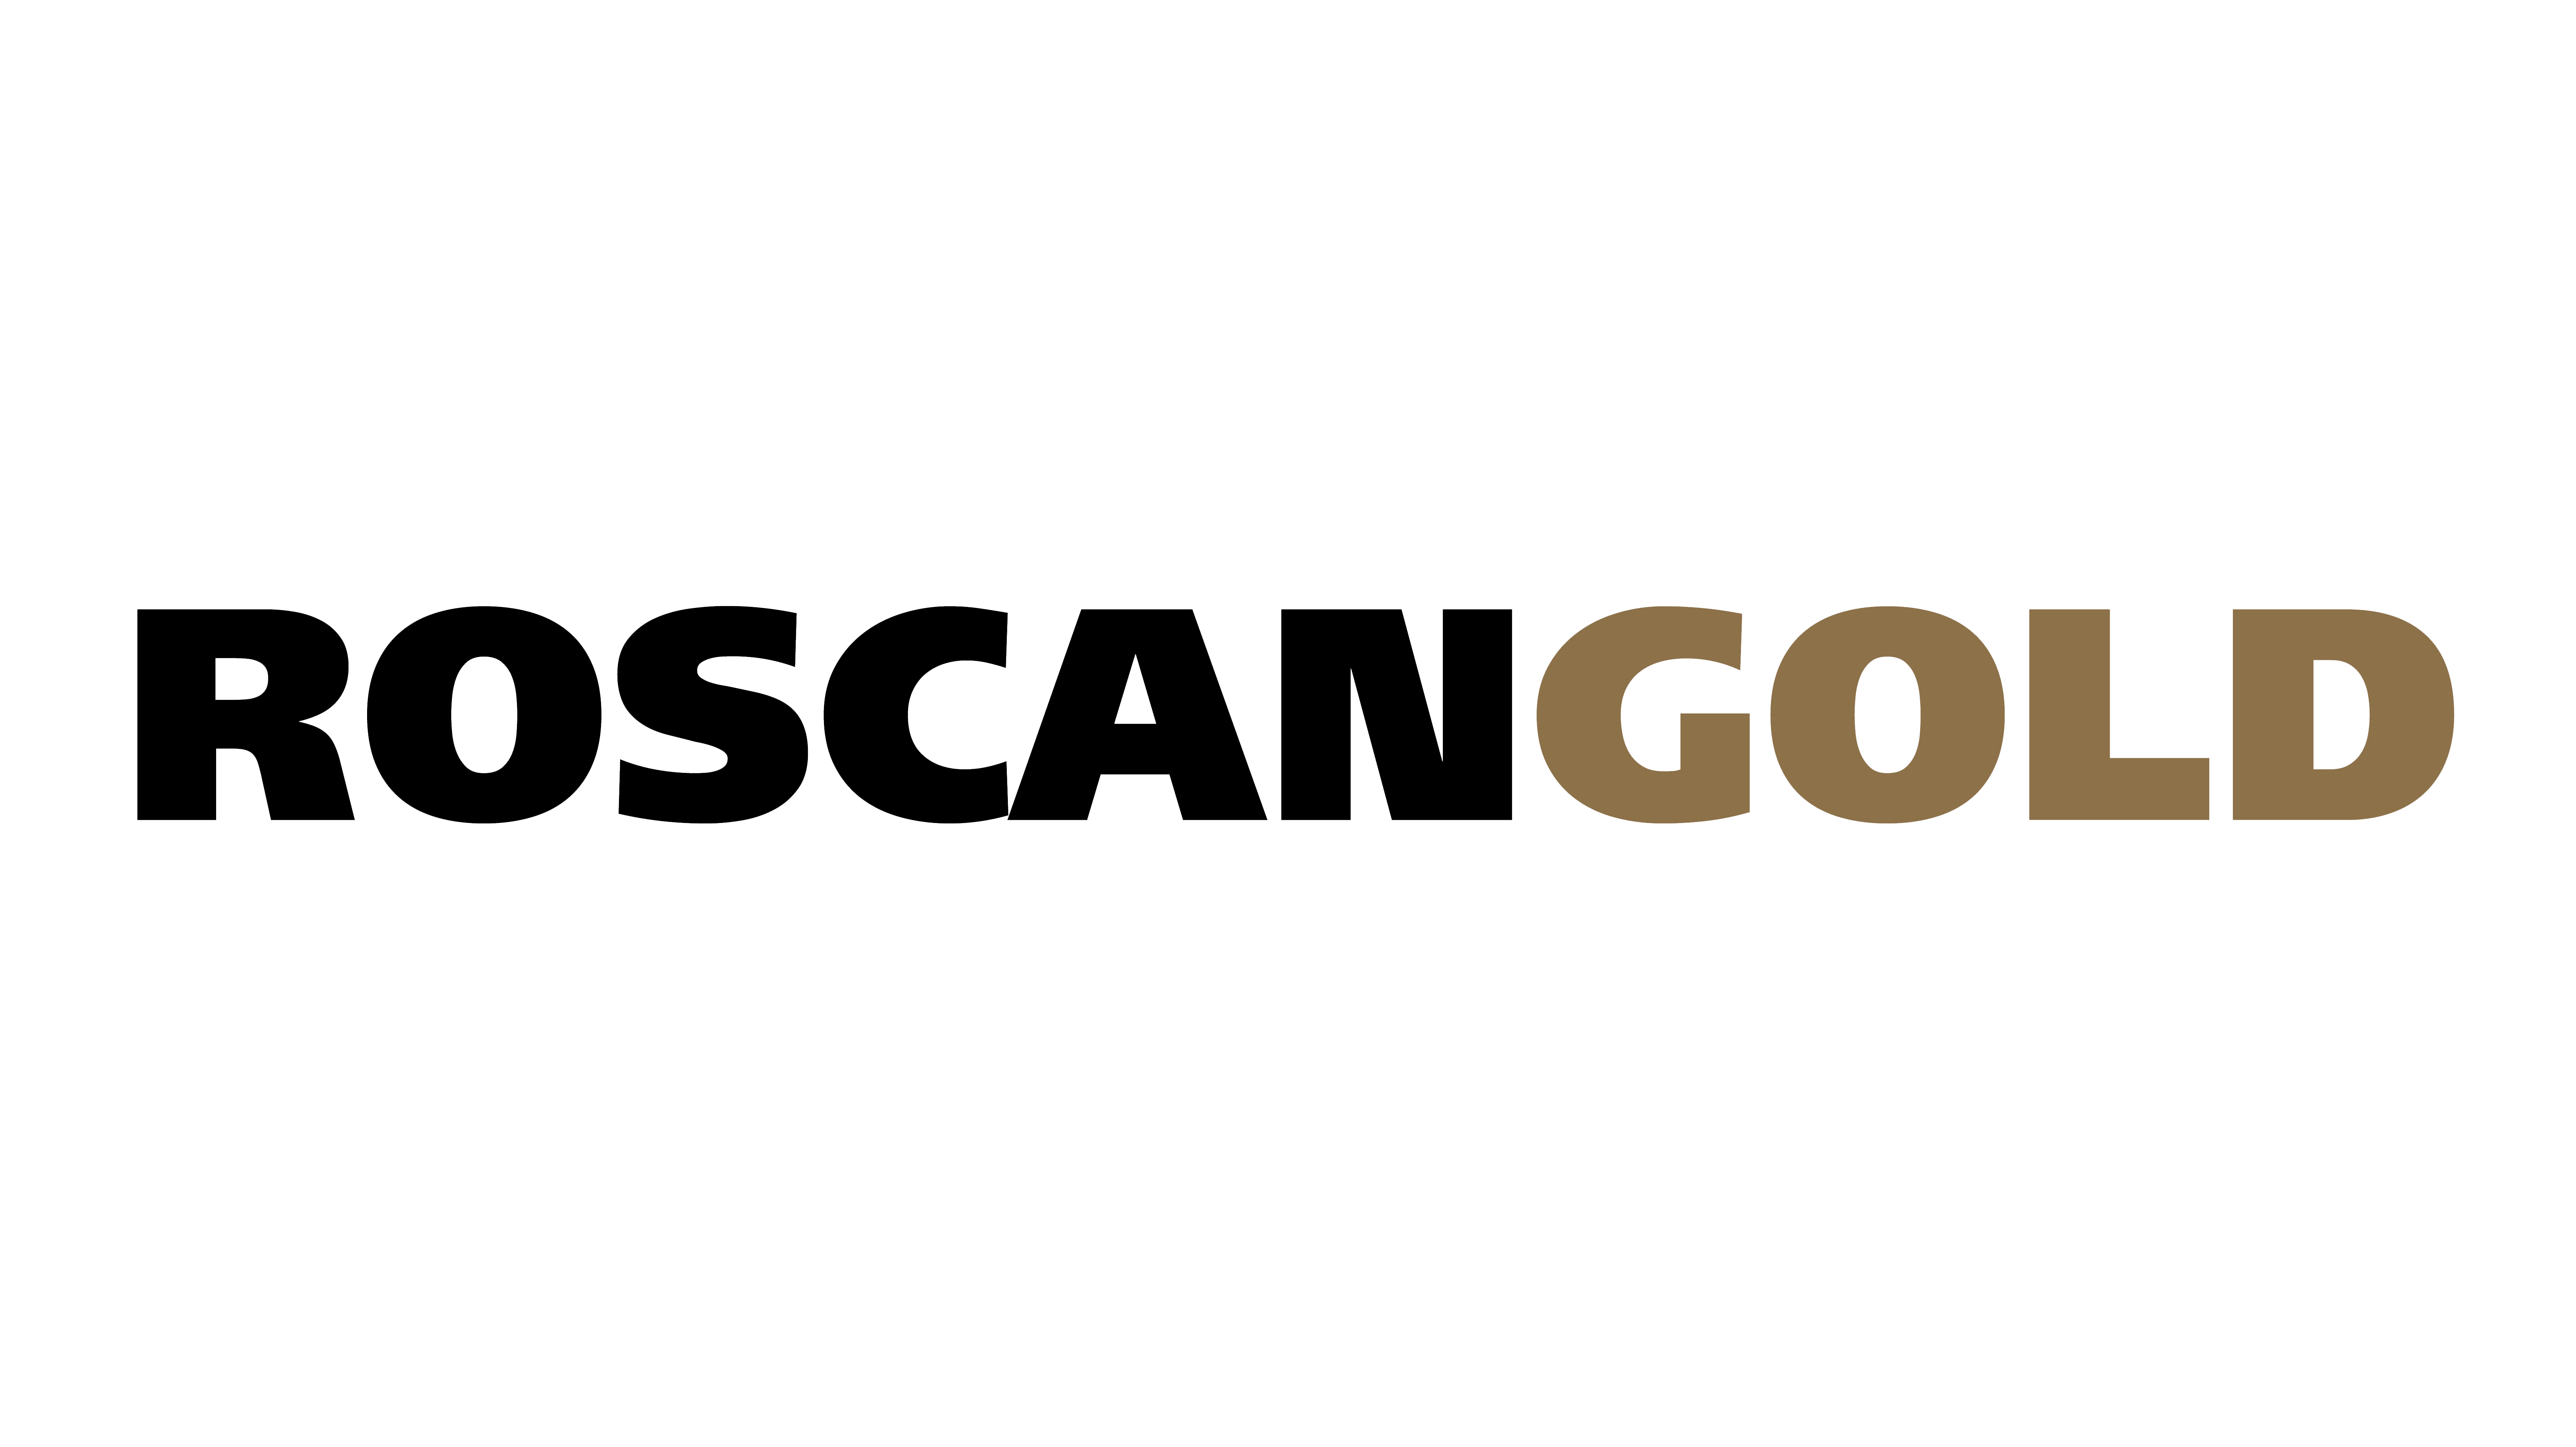 Roscan Gold Provides Regional Update: Intersects 17.34gpt Over 4m at Walia, 3.38gpt Over 12m at Kandiole North and 2.20gpt Gold Over 31m at Moussala North